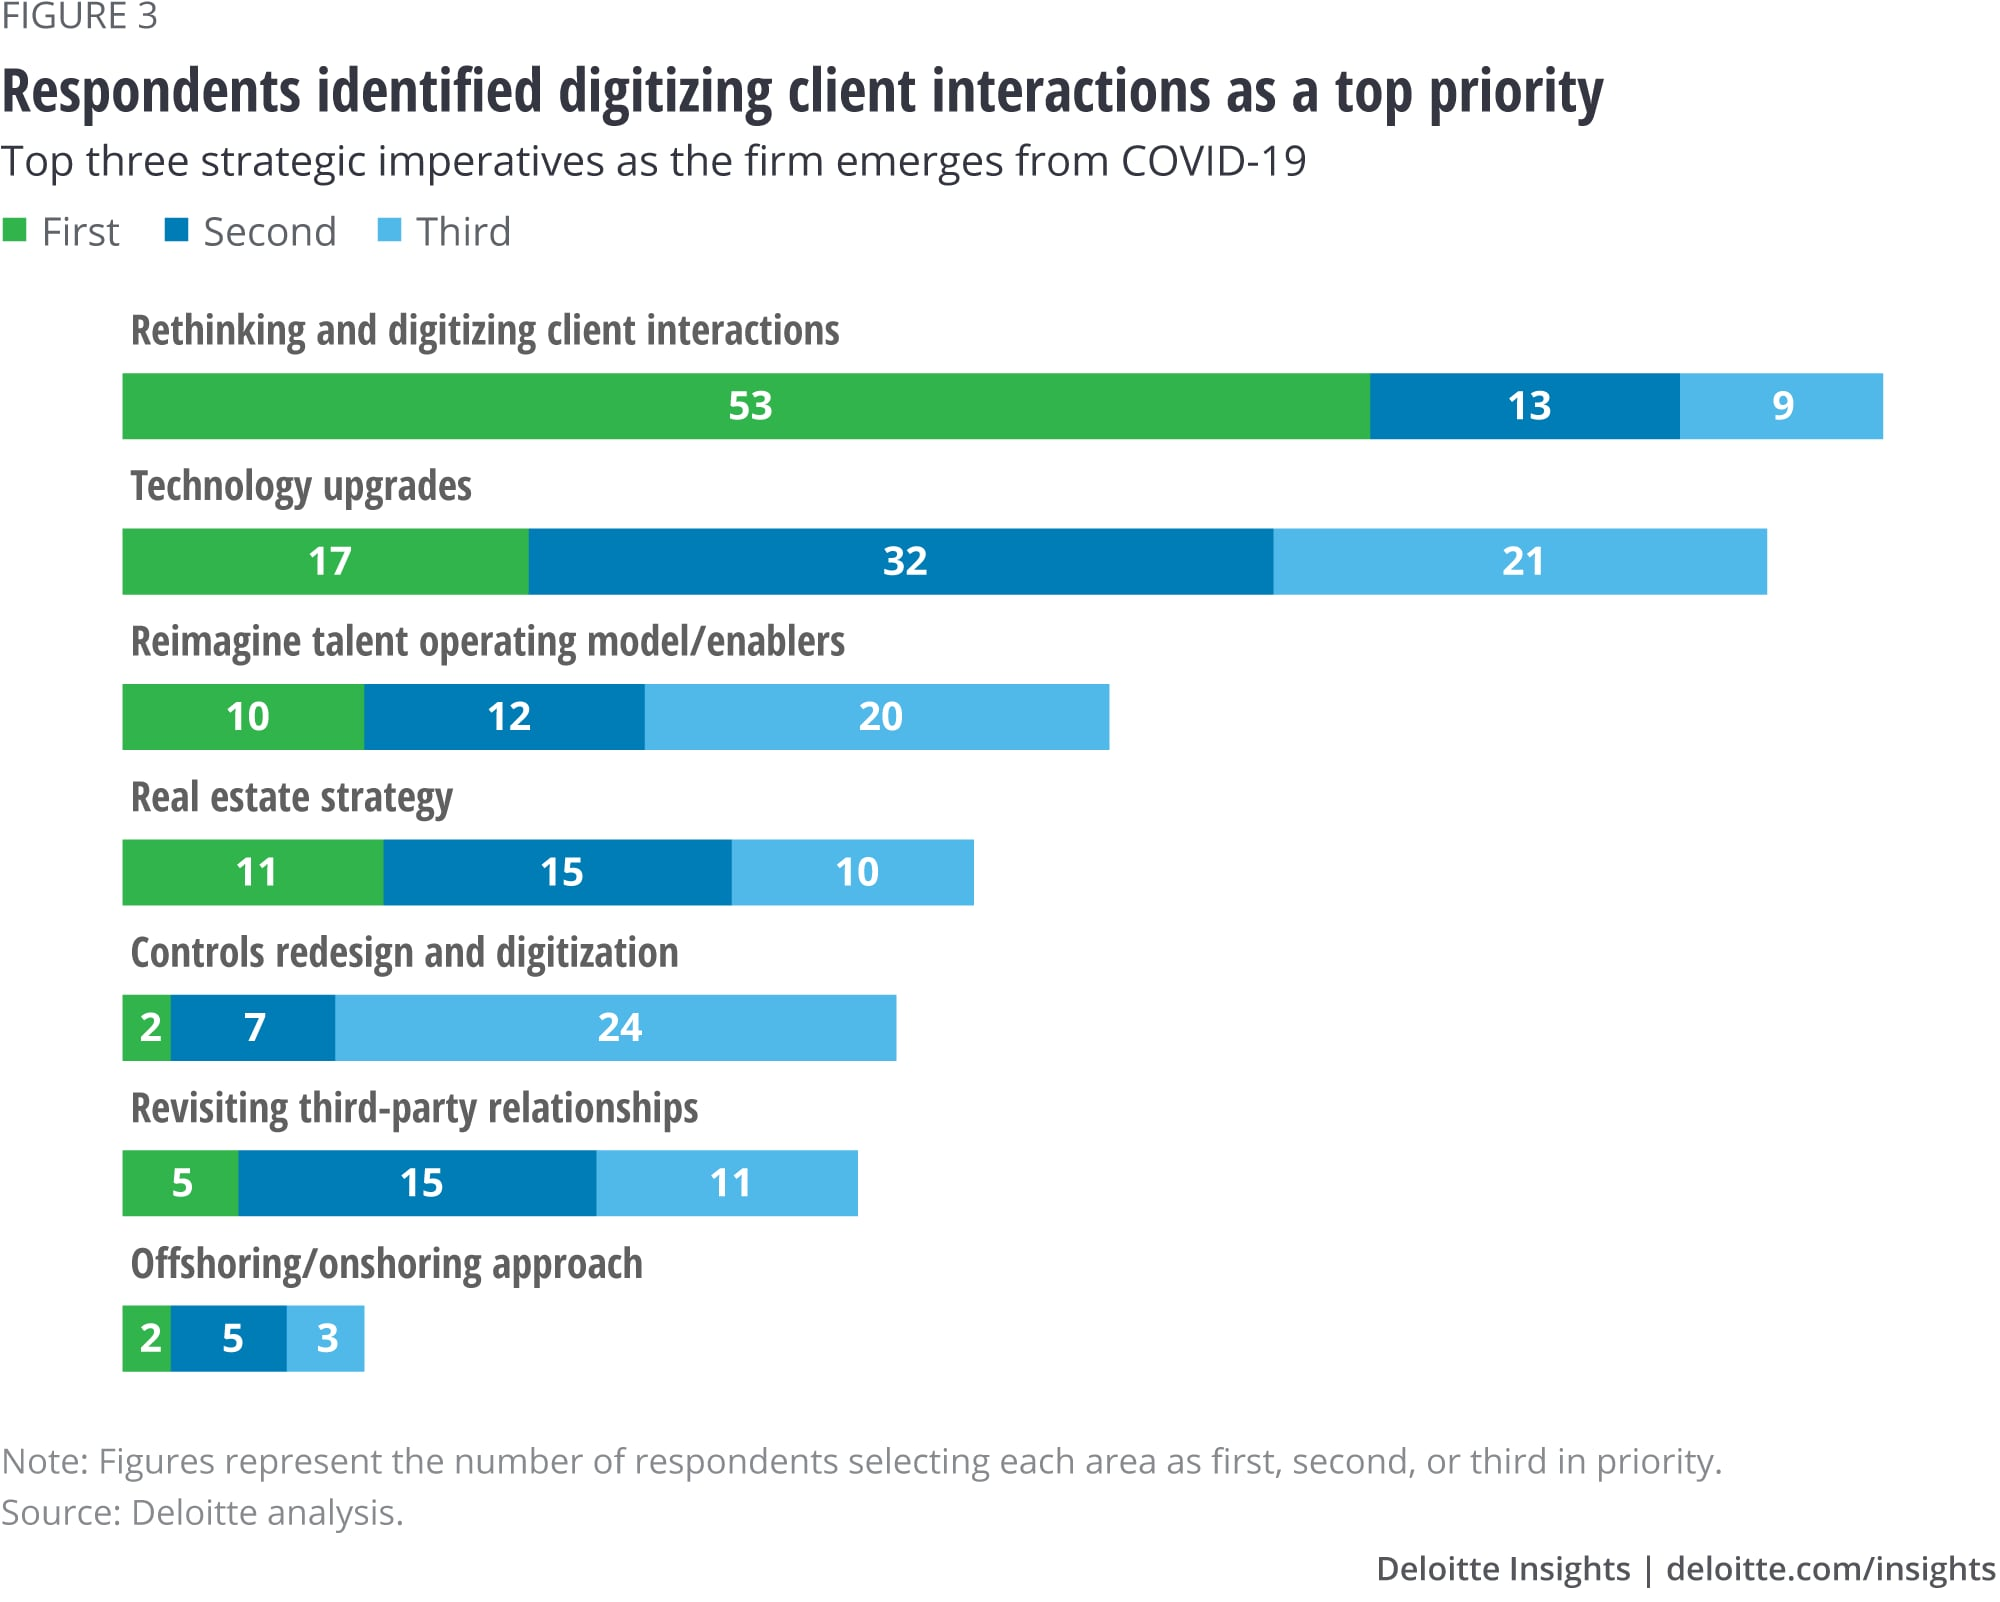 Respondents identified digitizing client interactions as a top priority